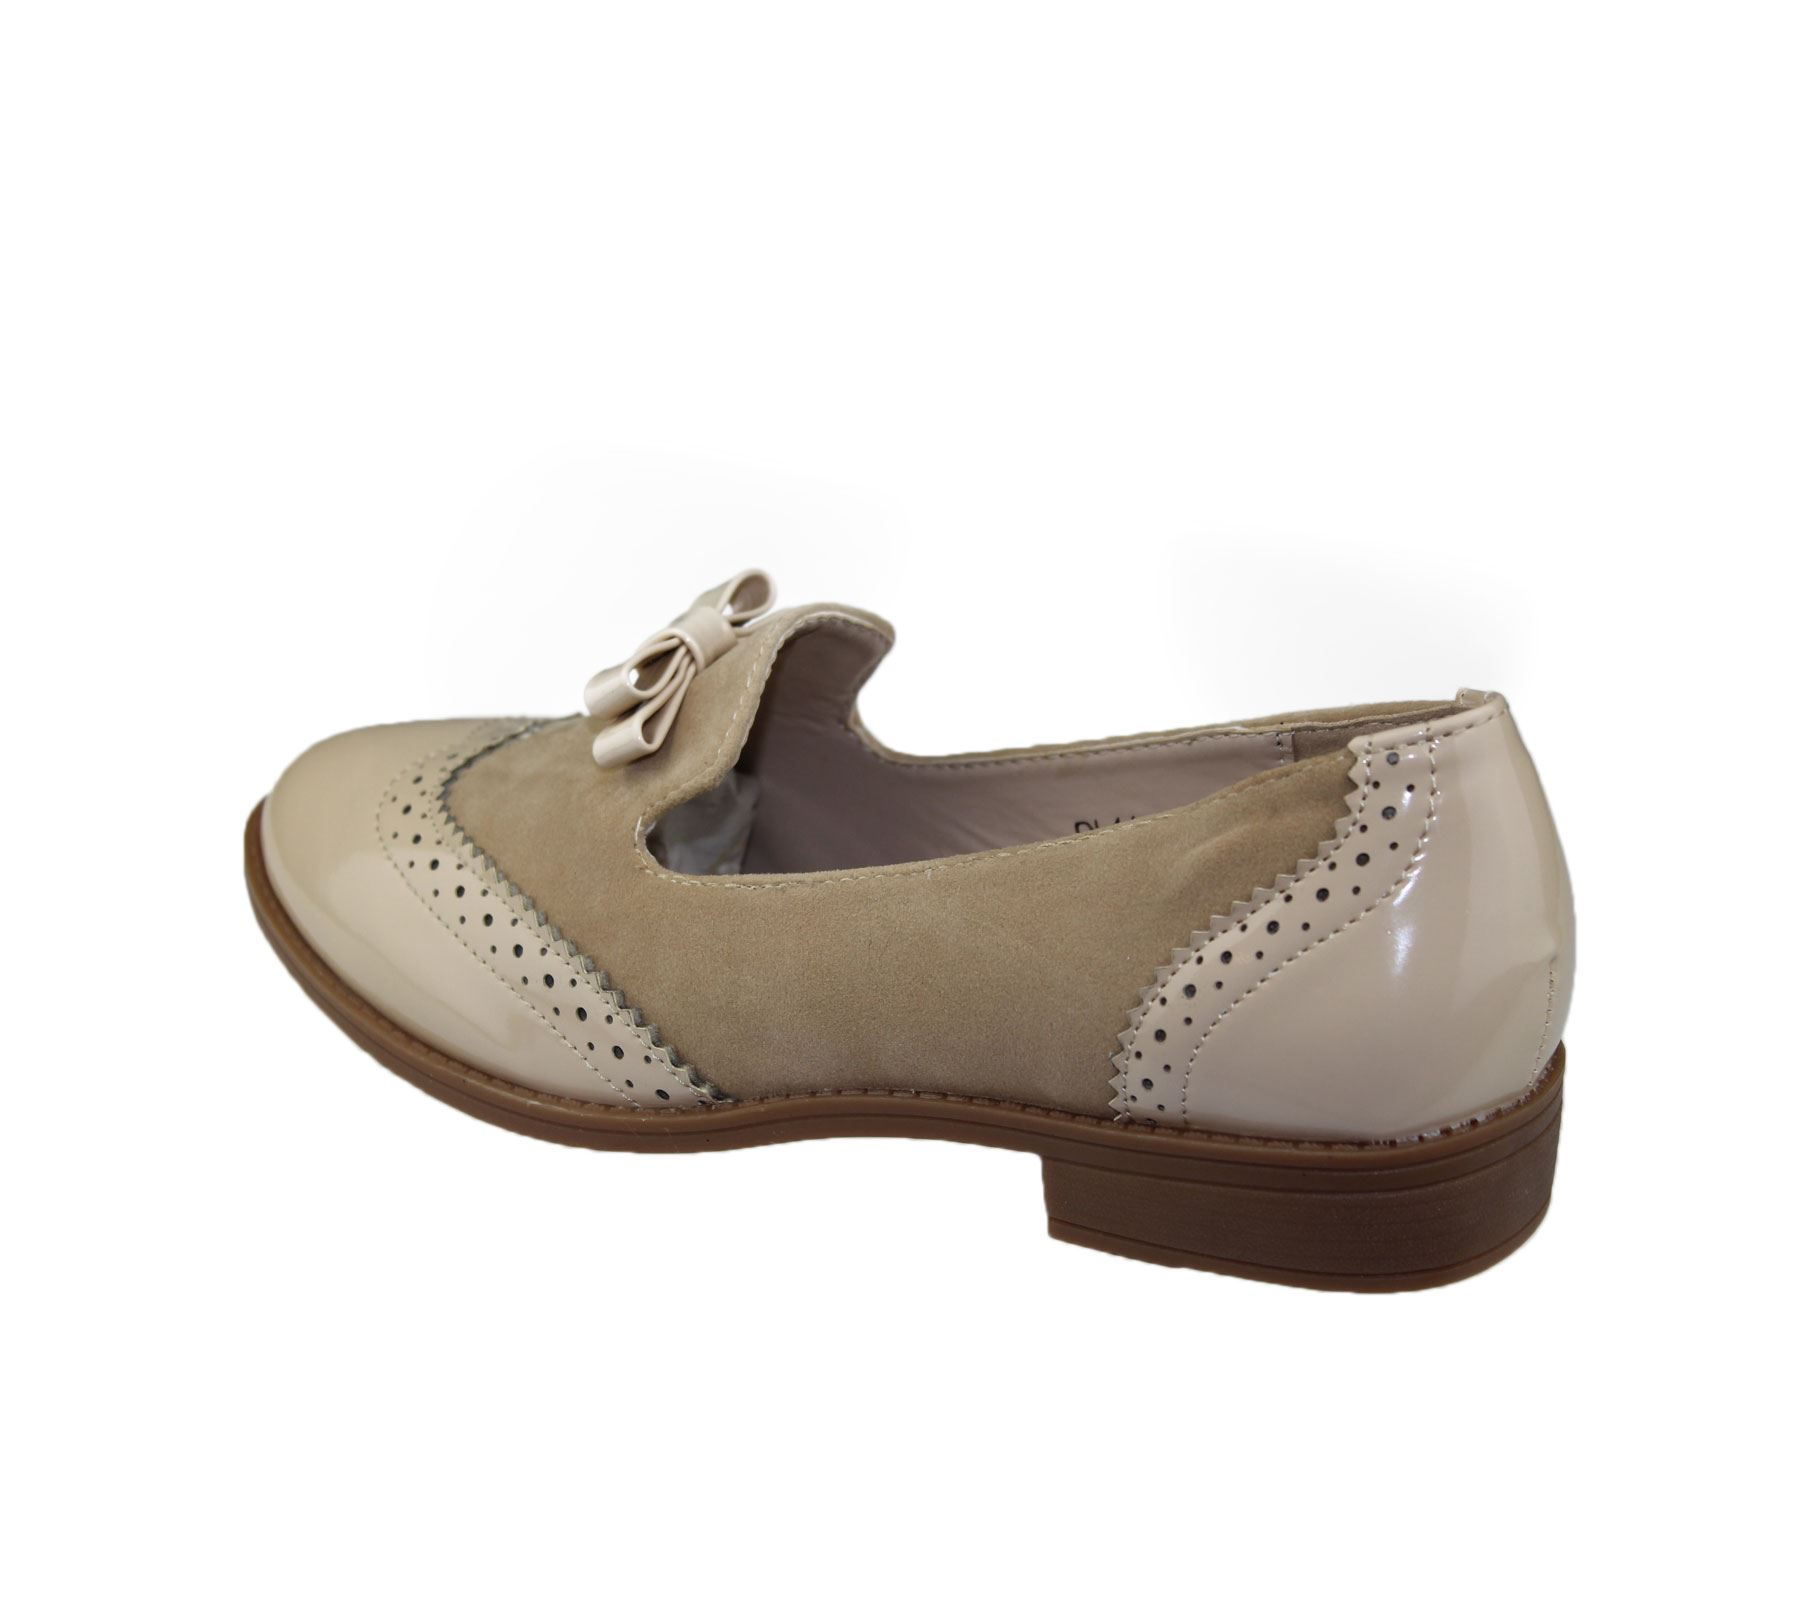 Shop for and buy womens suede shoes online at Macy's. Find womens suede shoes at Macy's.